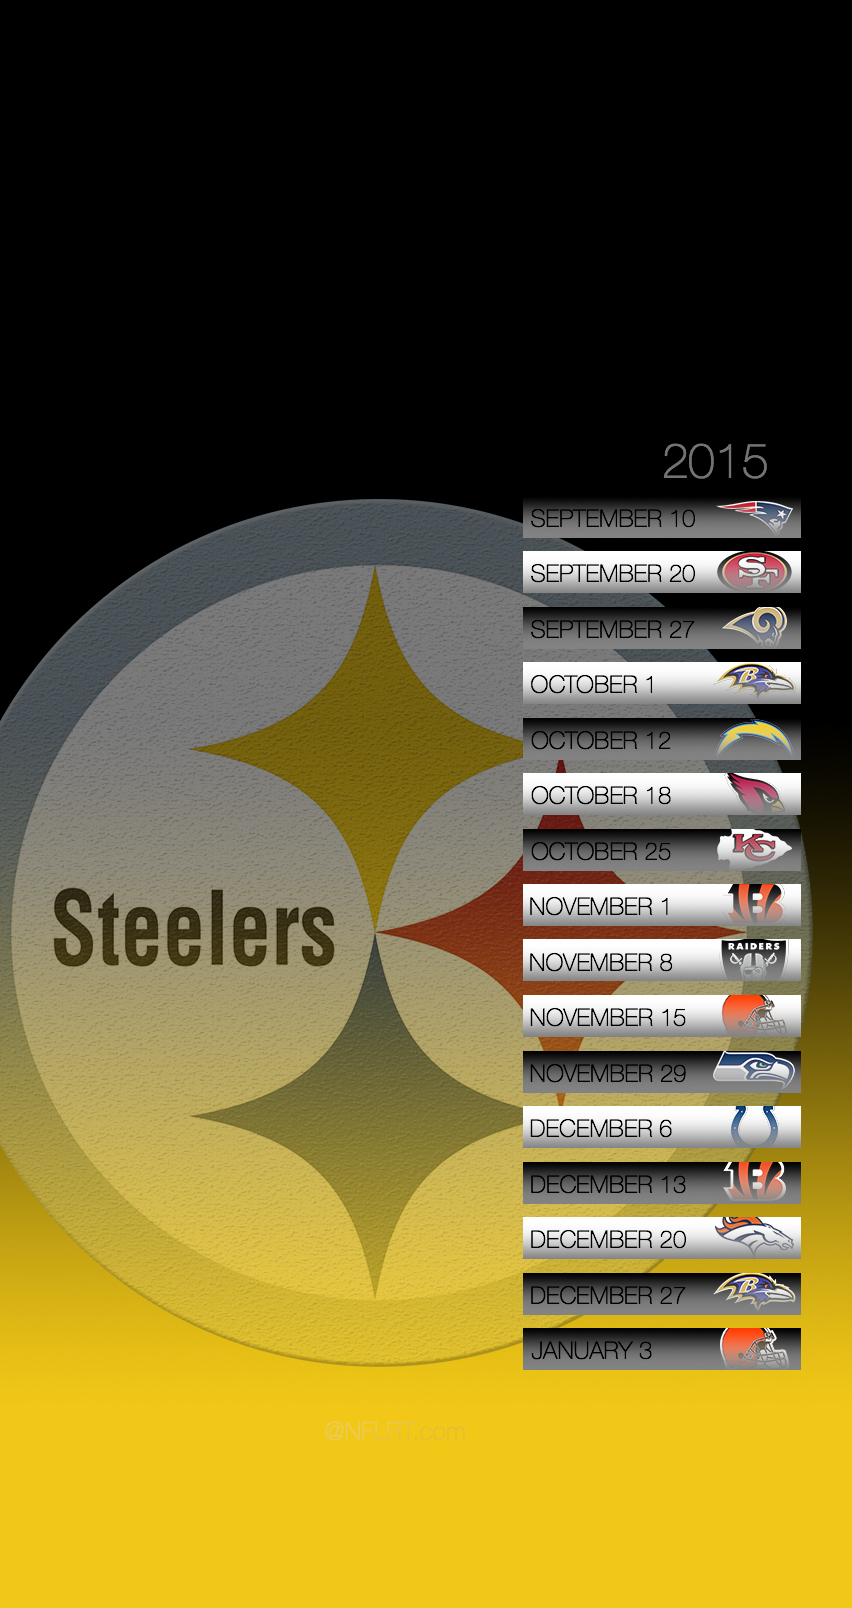 Ravens Cincinnati Bengals Cleveland Browns or Pittsburgh Steelers 852x1608